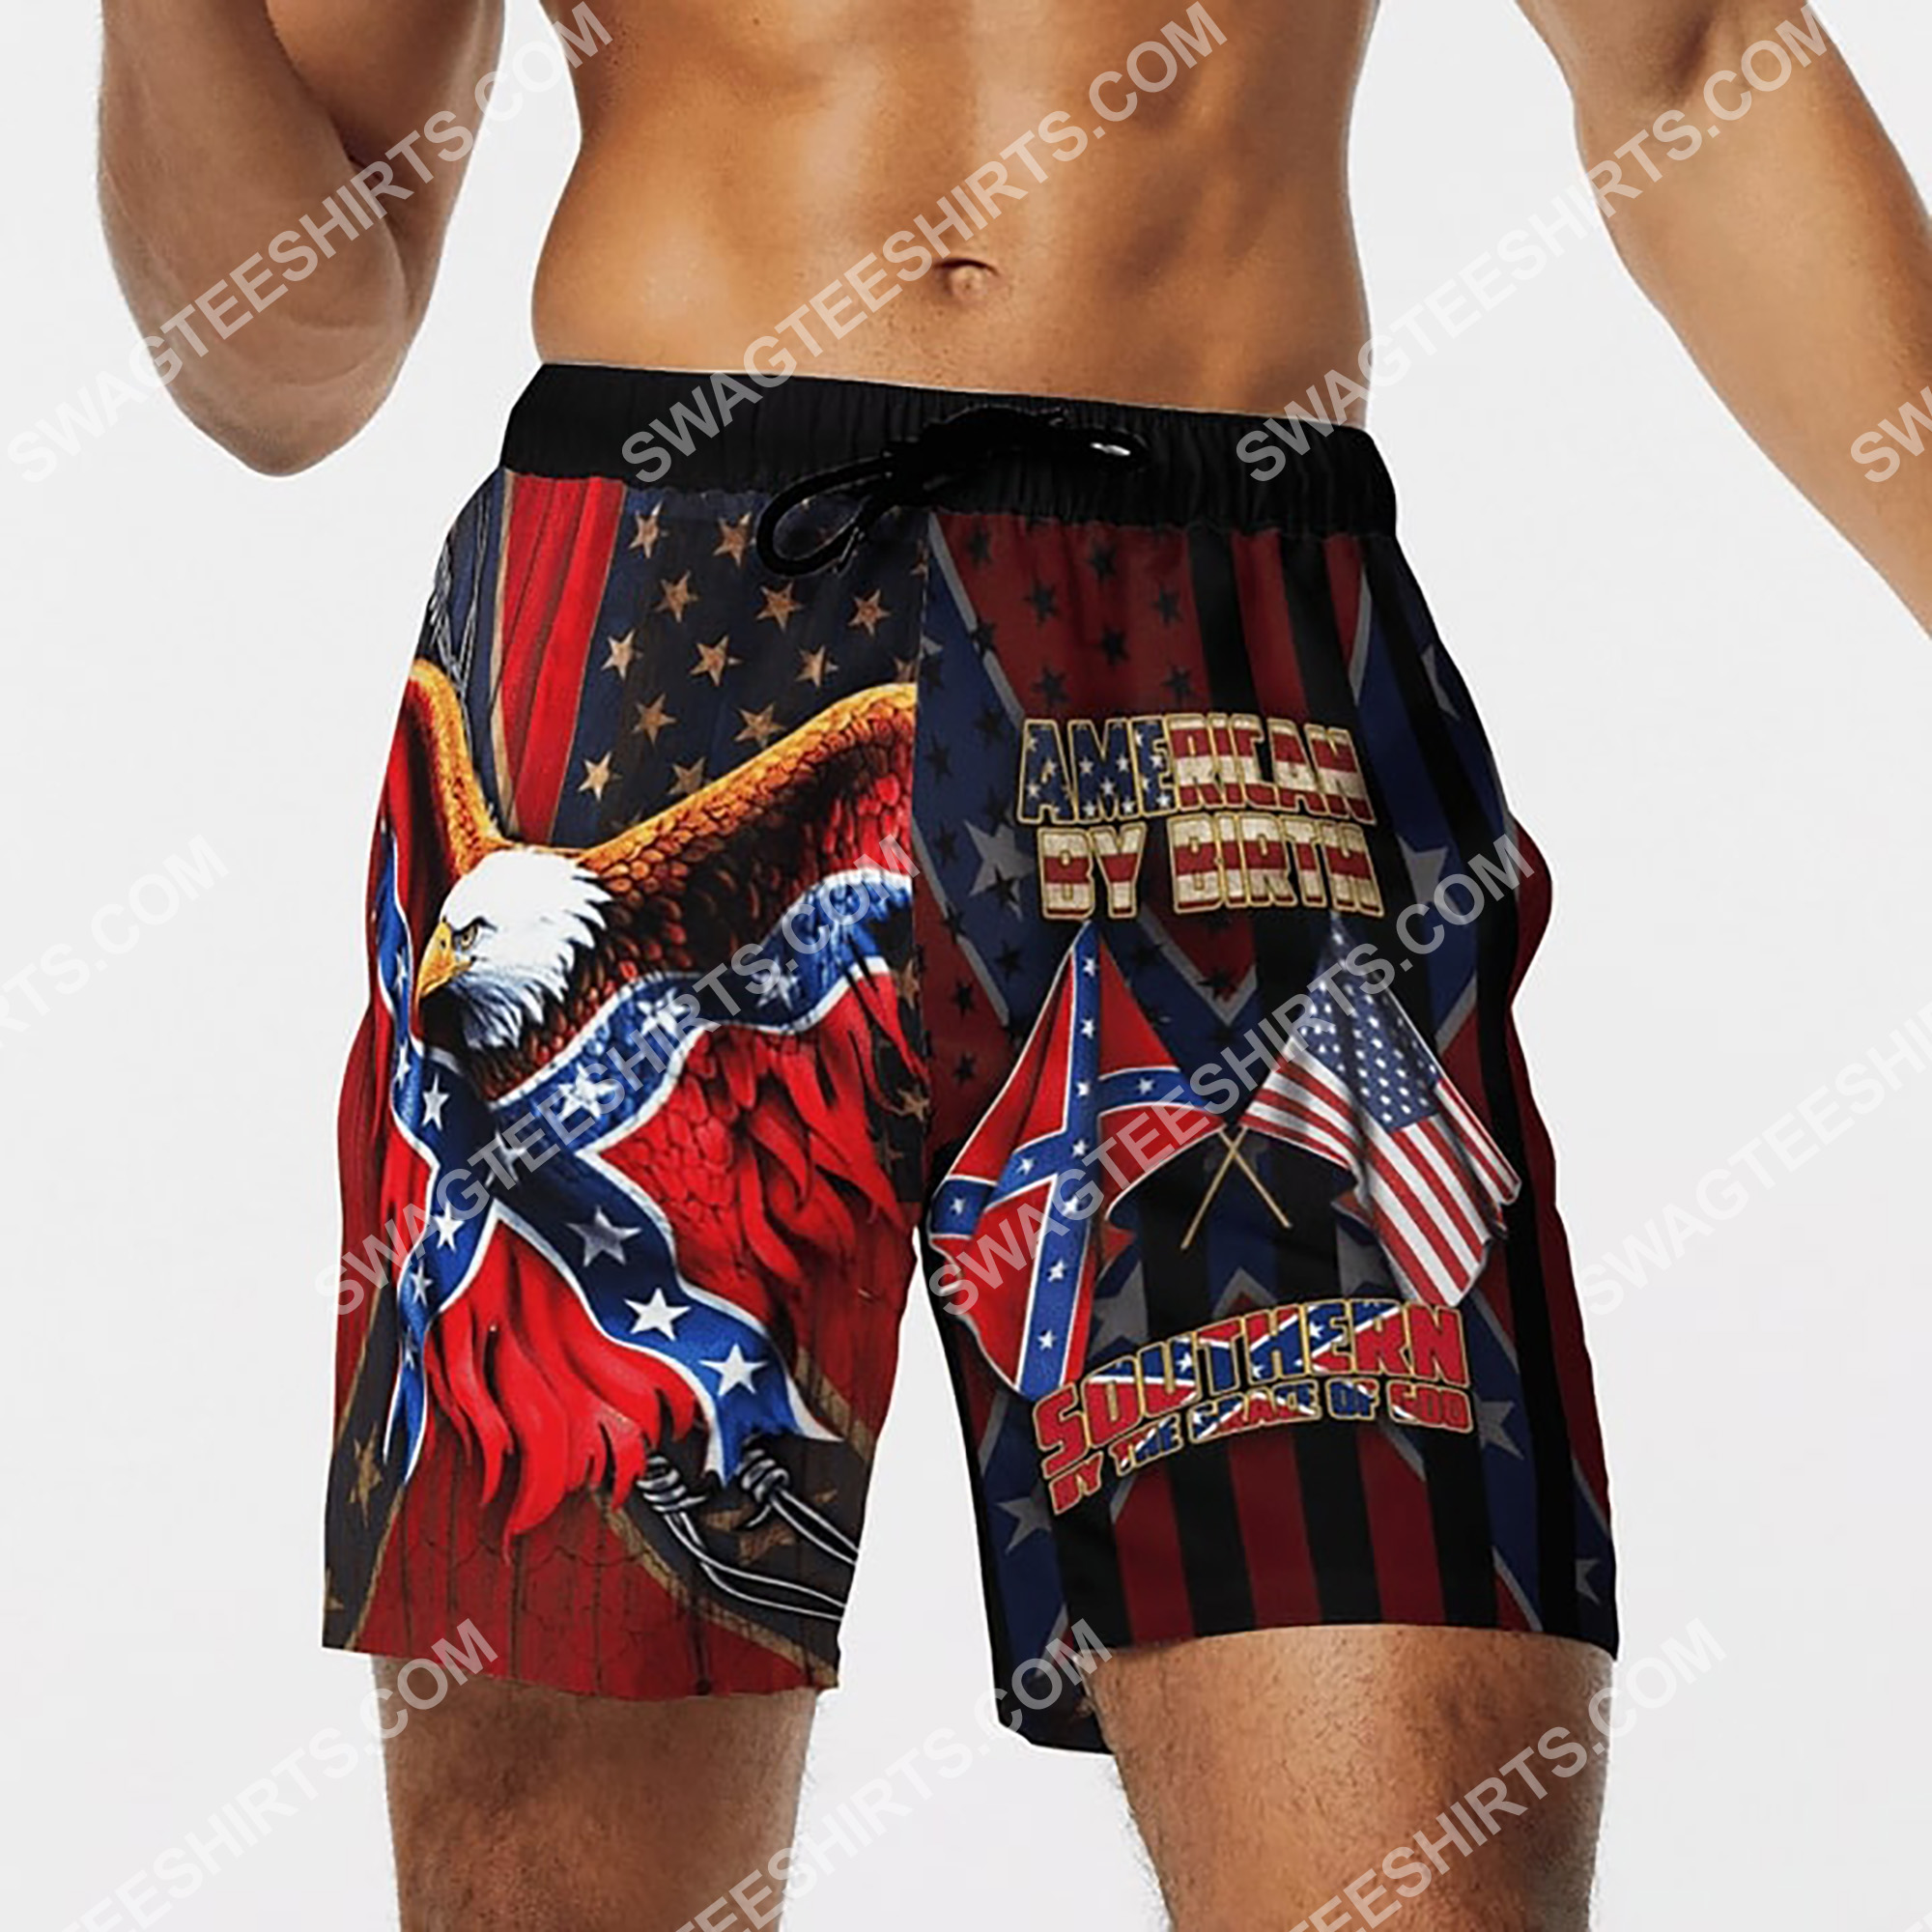 american by birth southern by the grace of God beach shorts 4(1)